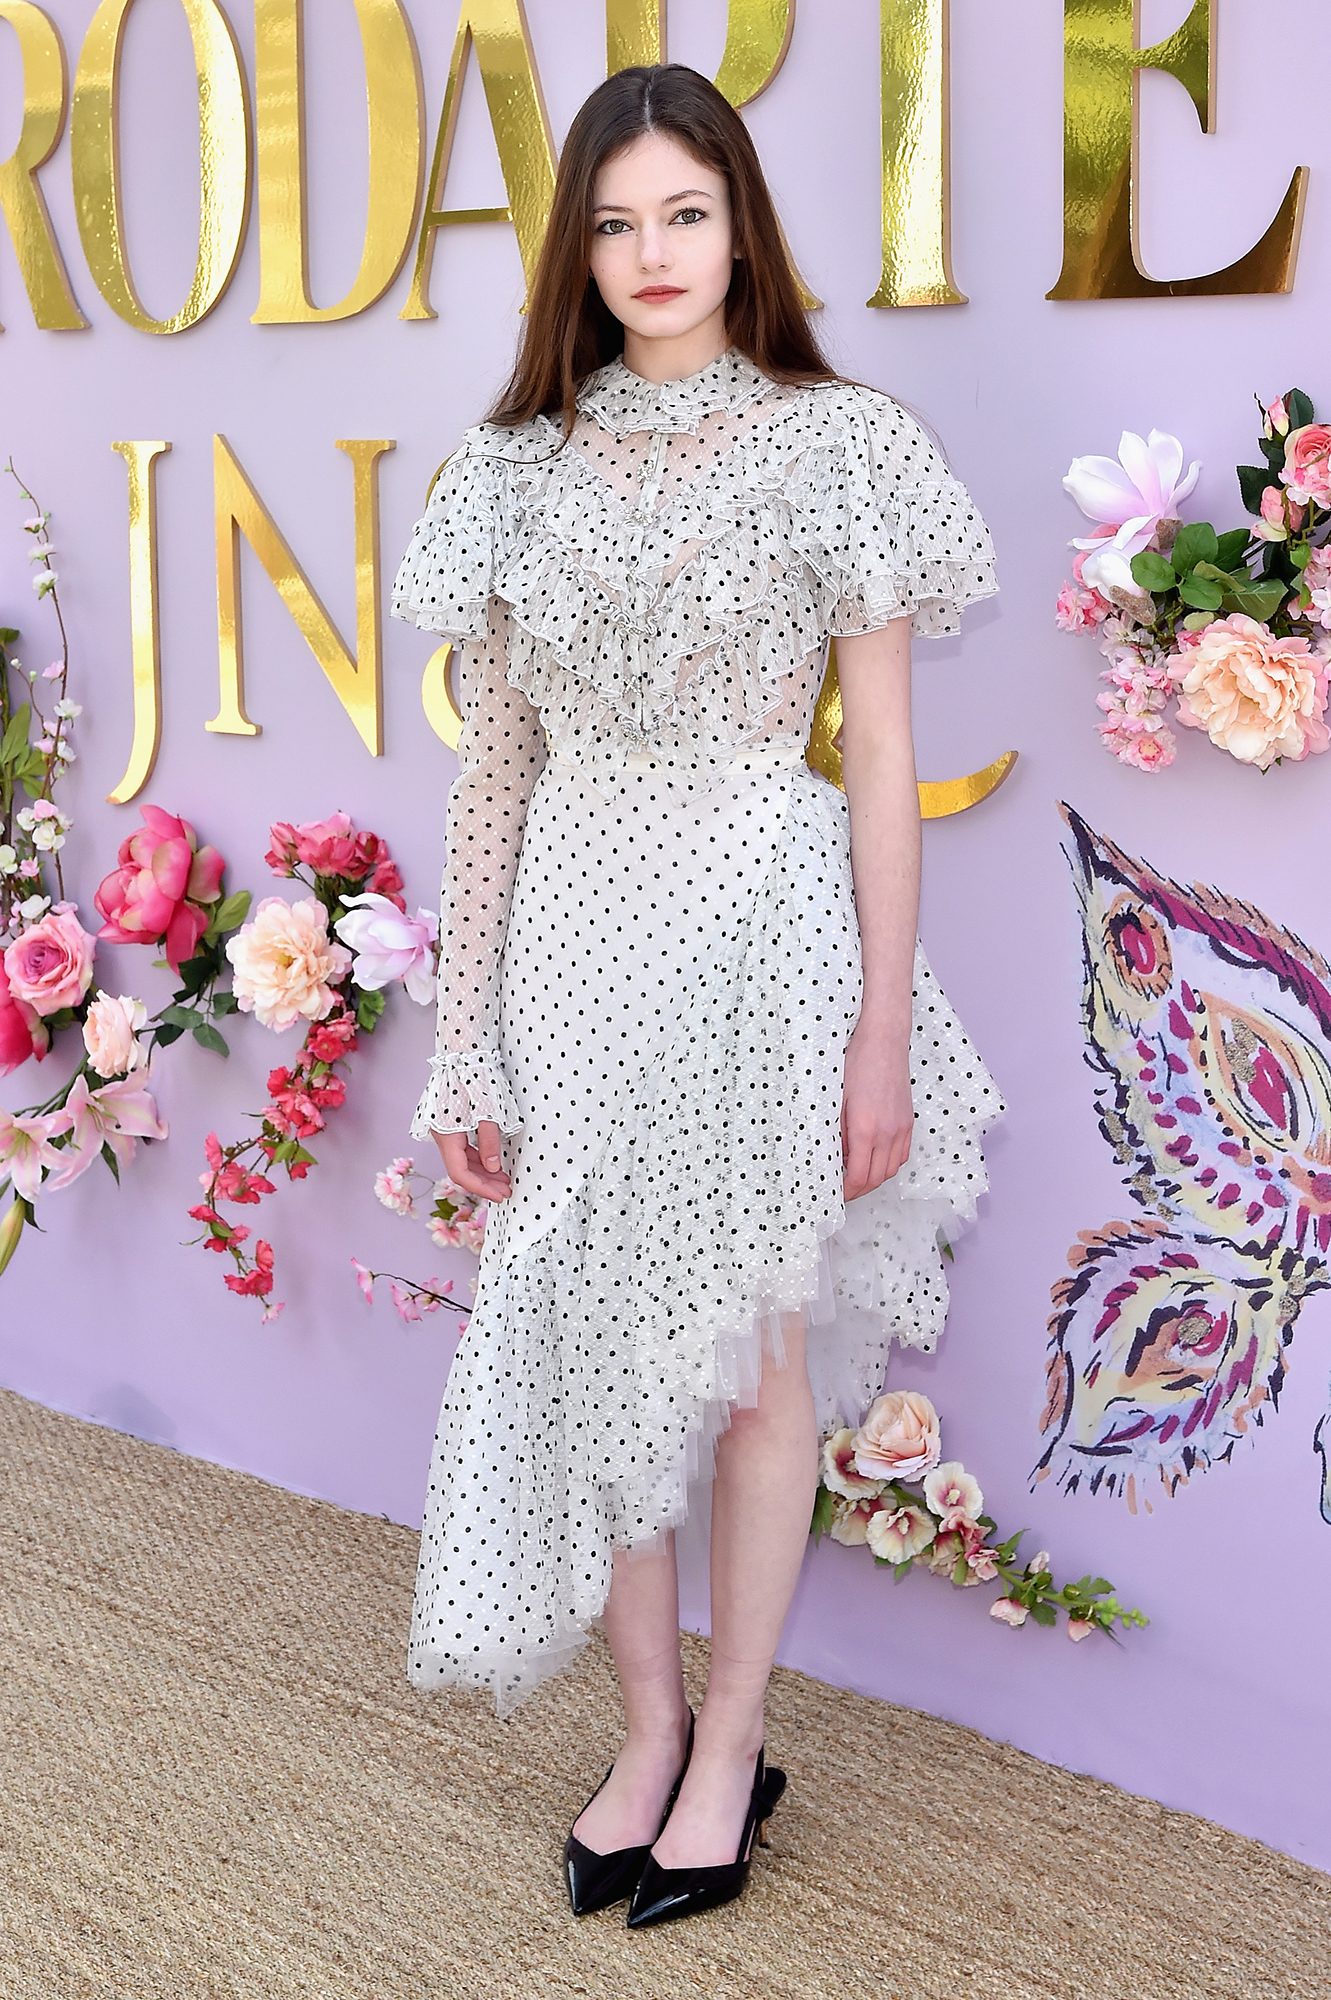 Hollywood's Freshest Faces Were Front Row at the Rodarte Show - In case we needed a reminder that summer's polka dot trend isn't going anywhere, the Nutcracker and the Four Realms star dazzled in a dotted black and white midi.